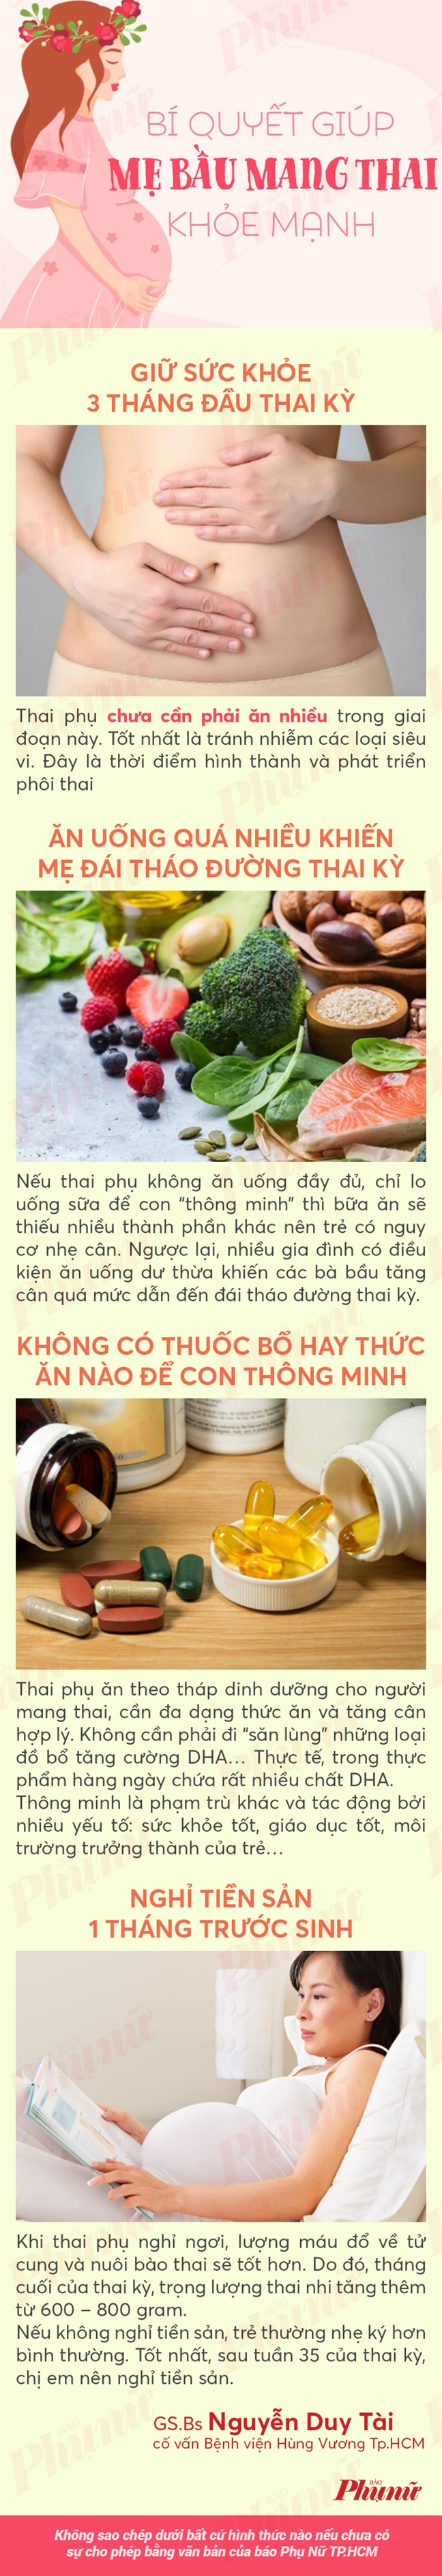 Muon sinh con khoe manh thong minh hay lam theo cach nay